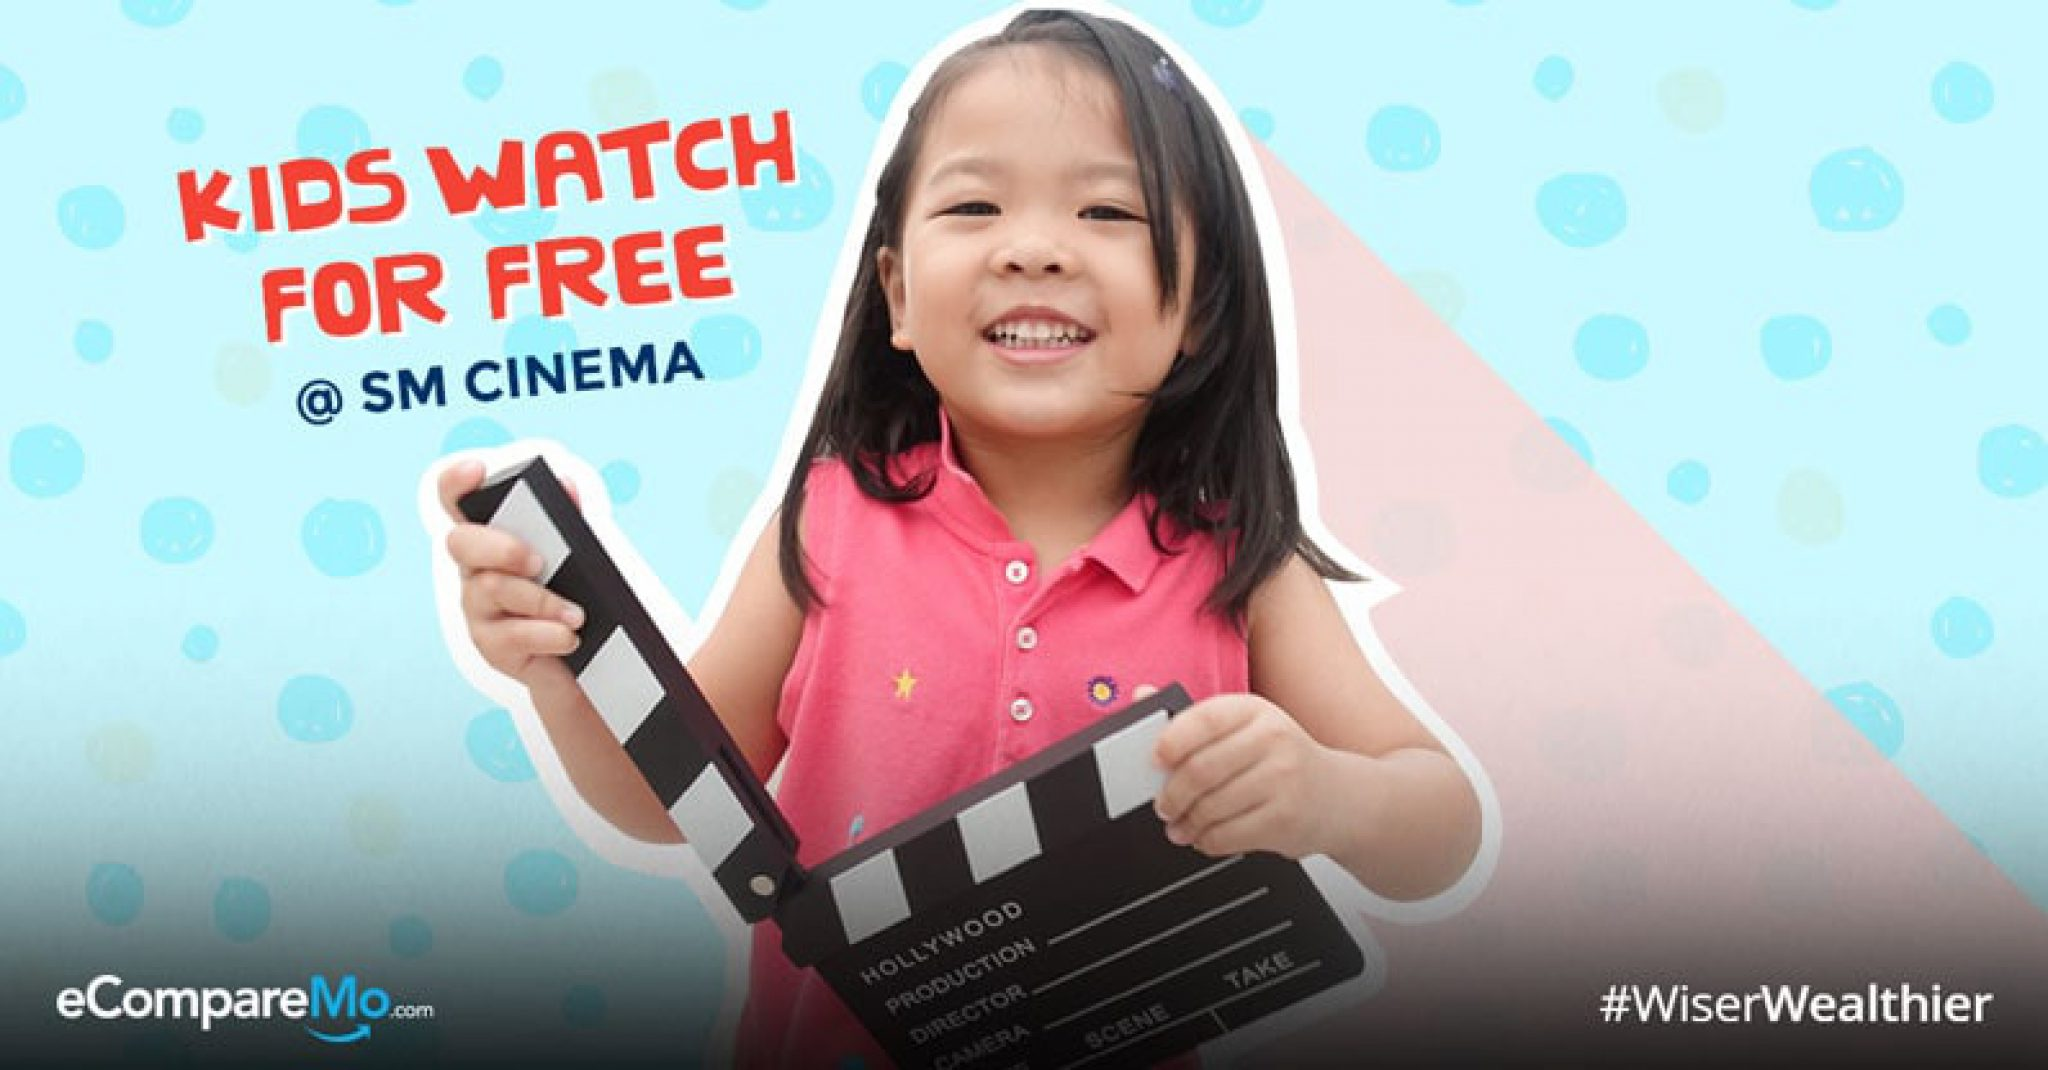 Free Movies For Kids At SM Cinemas: List Of Films To Watch